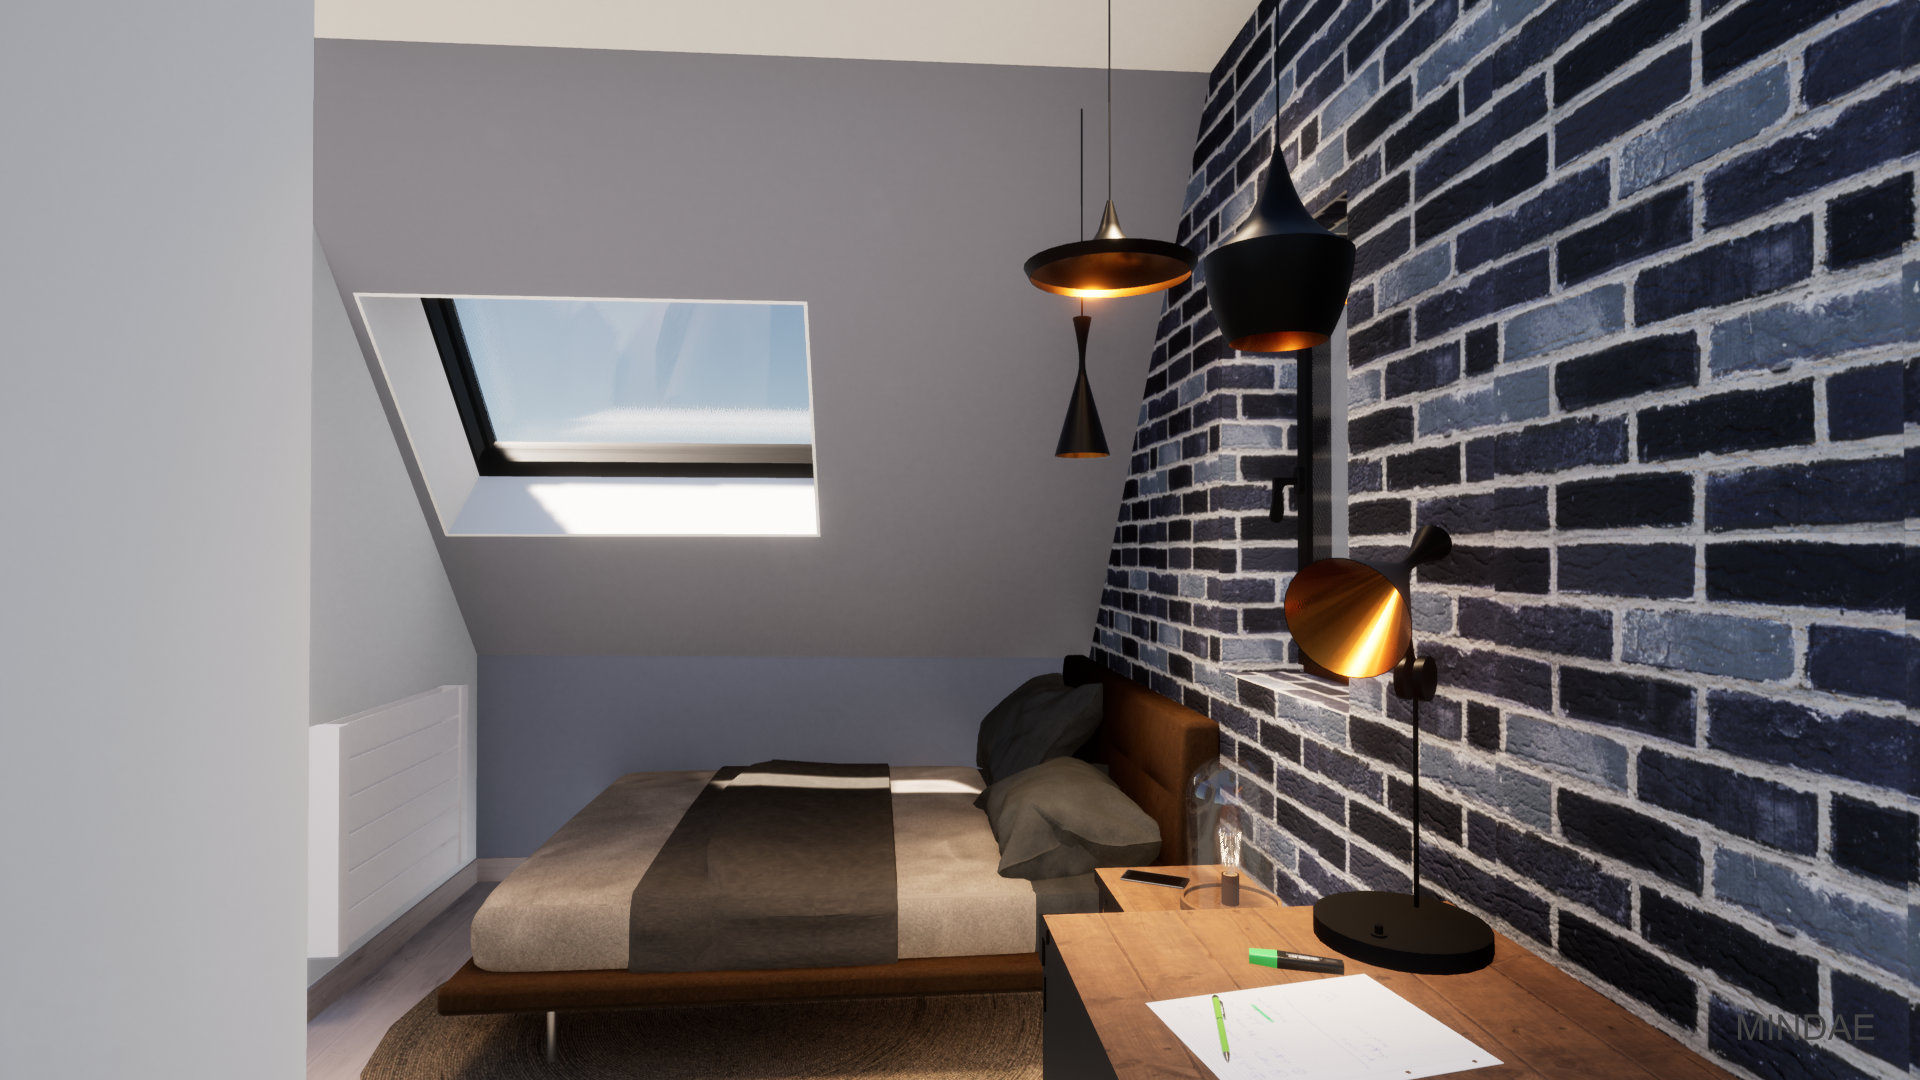 Mindae_Giang_Combles_Appartement_studio_chambre_mansarde_toiture (4)